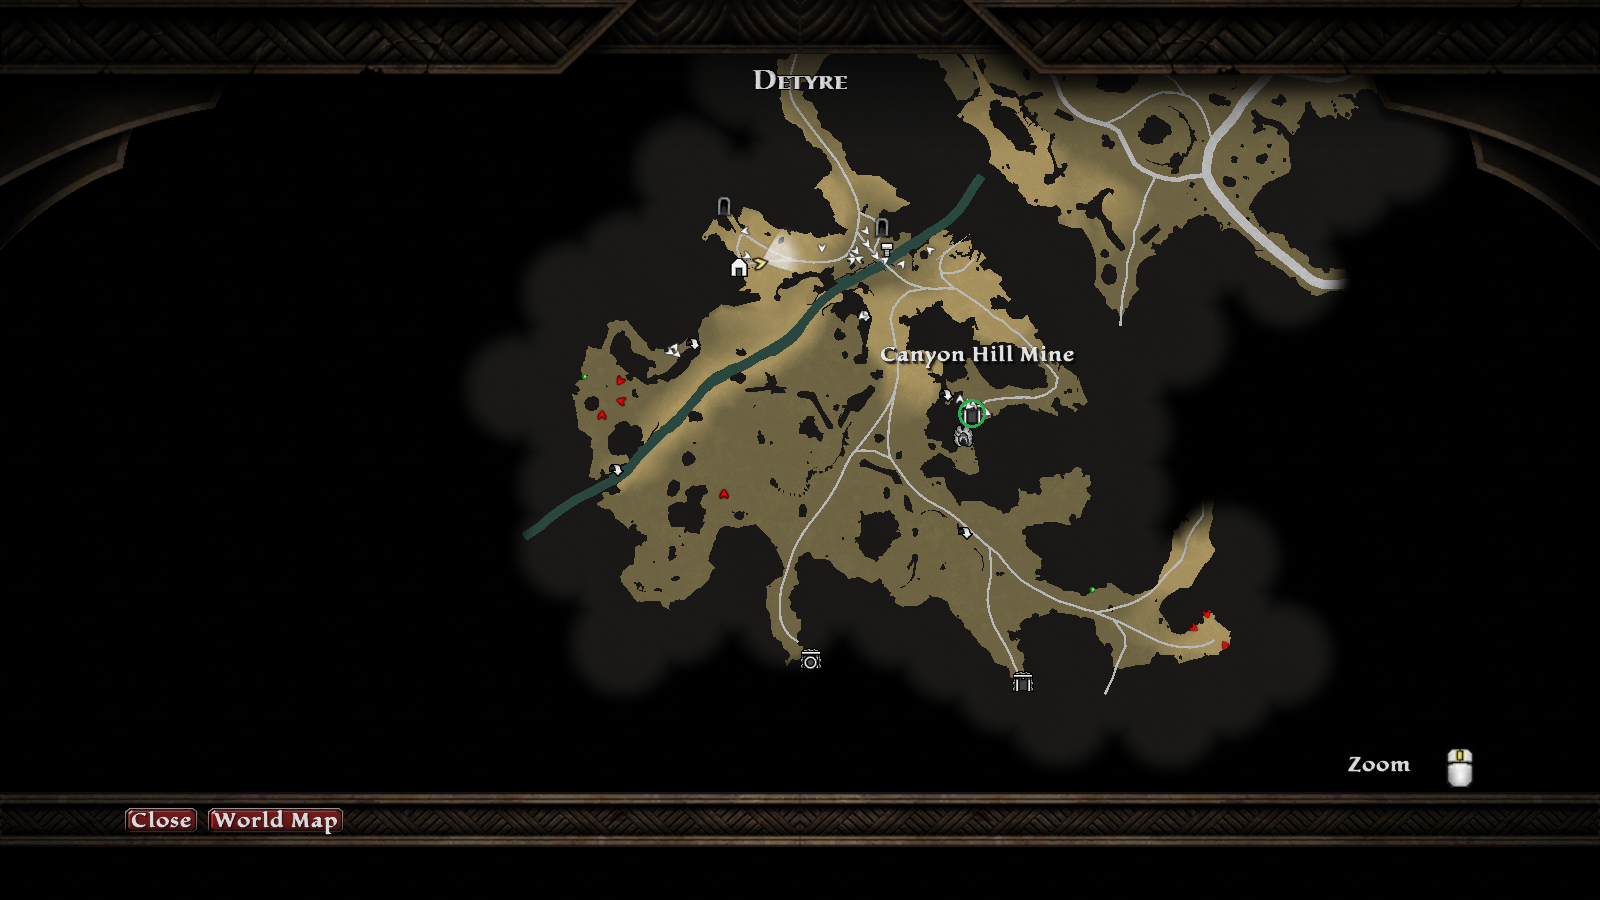 Local Map - Detyre - Hollowlands - Canyon Hill Mine 02.png